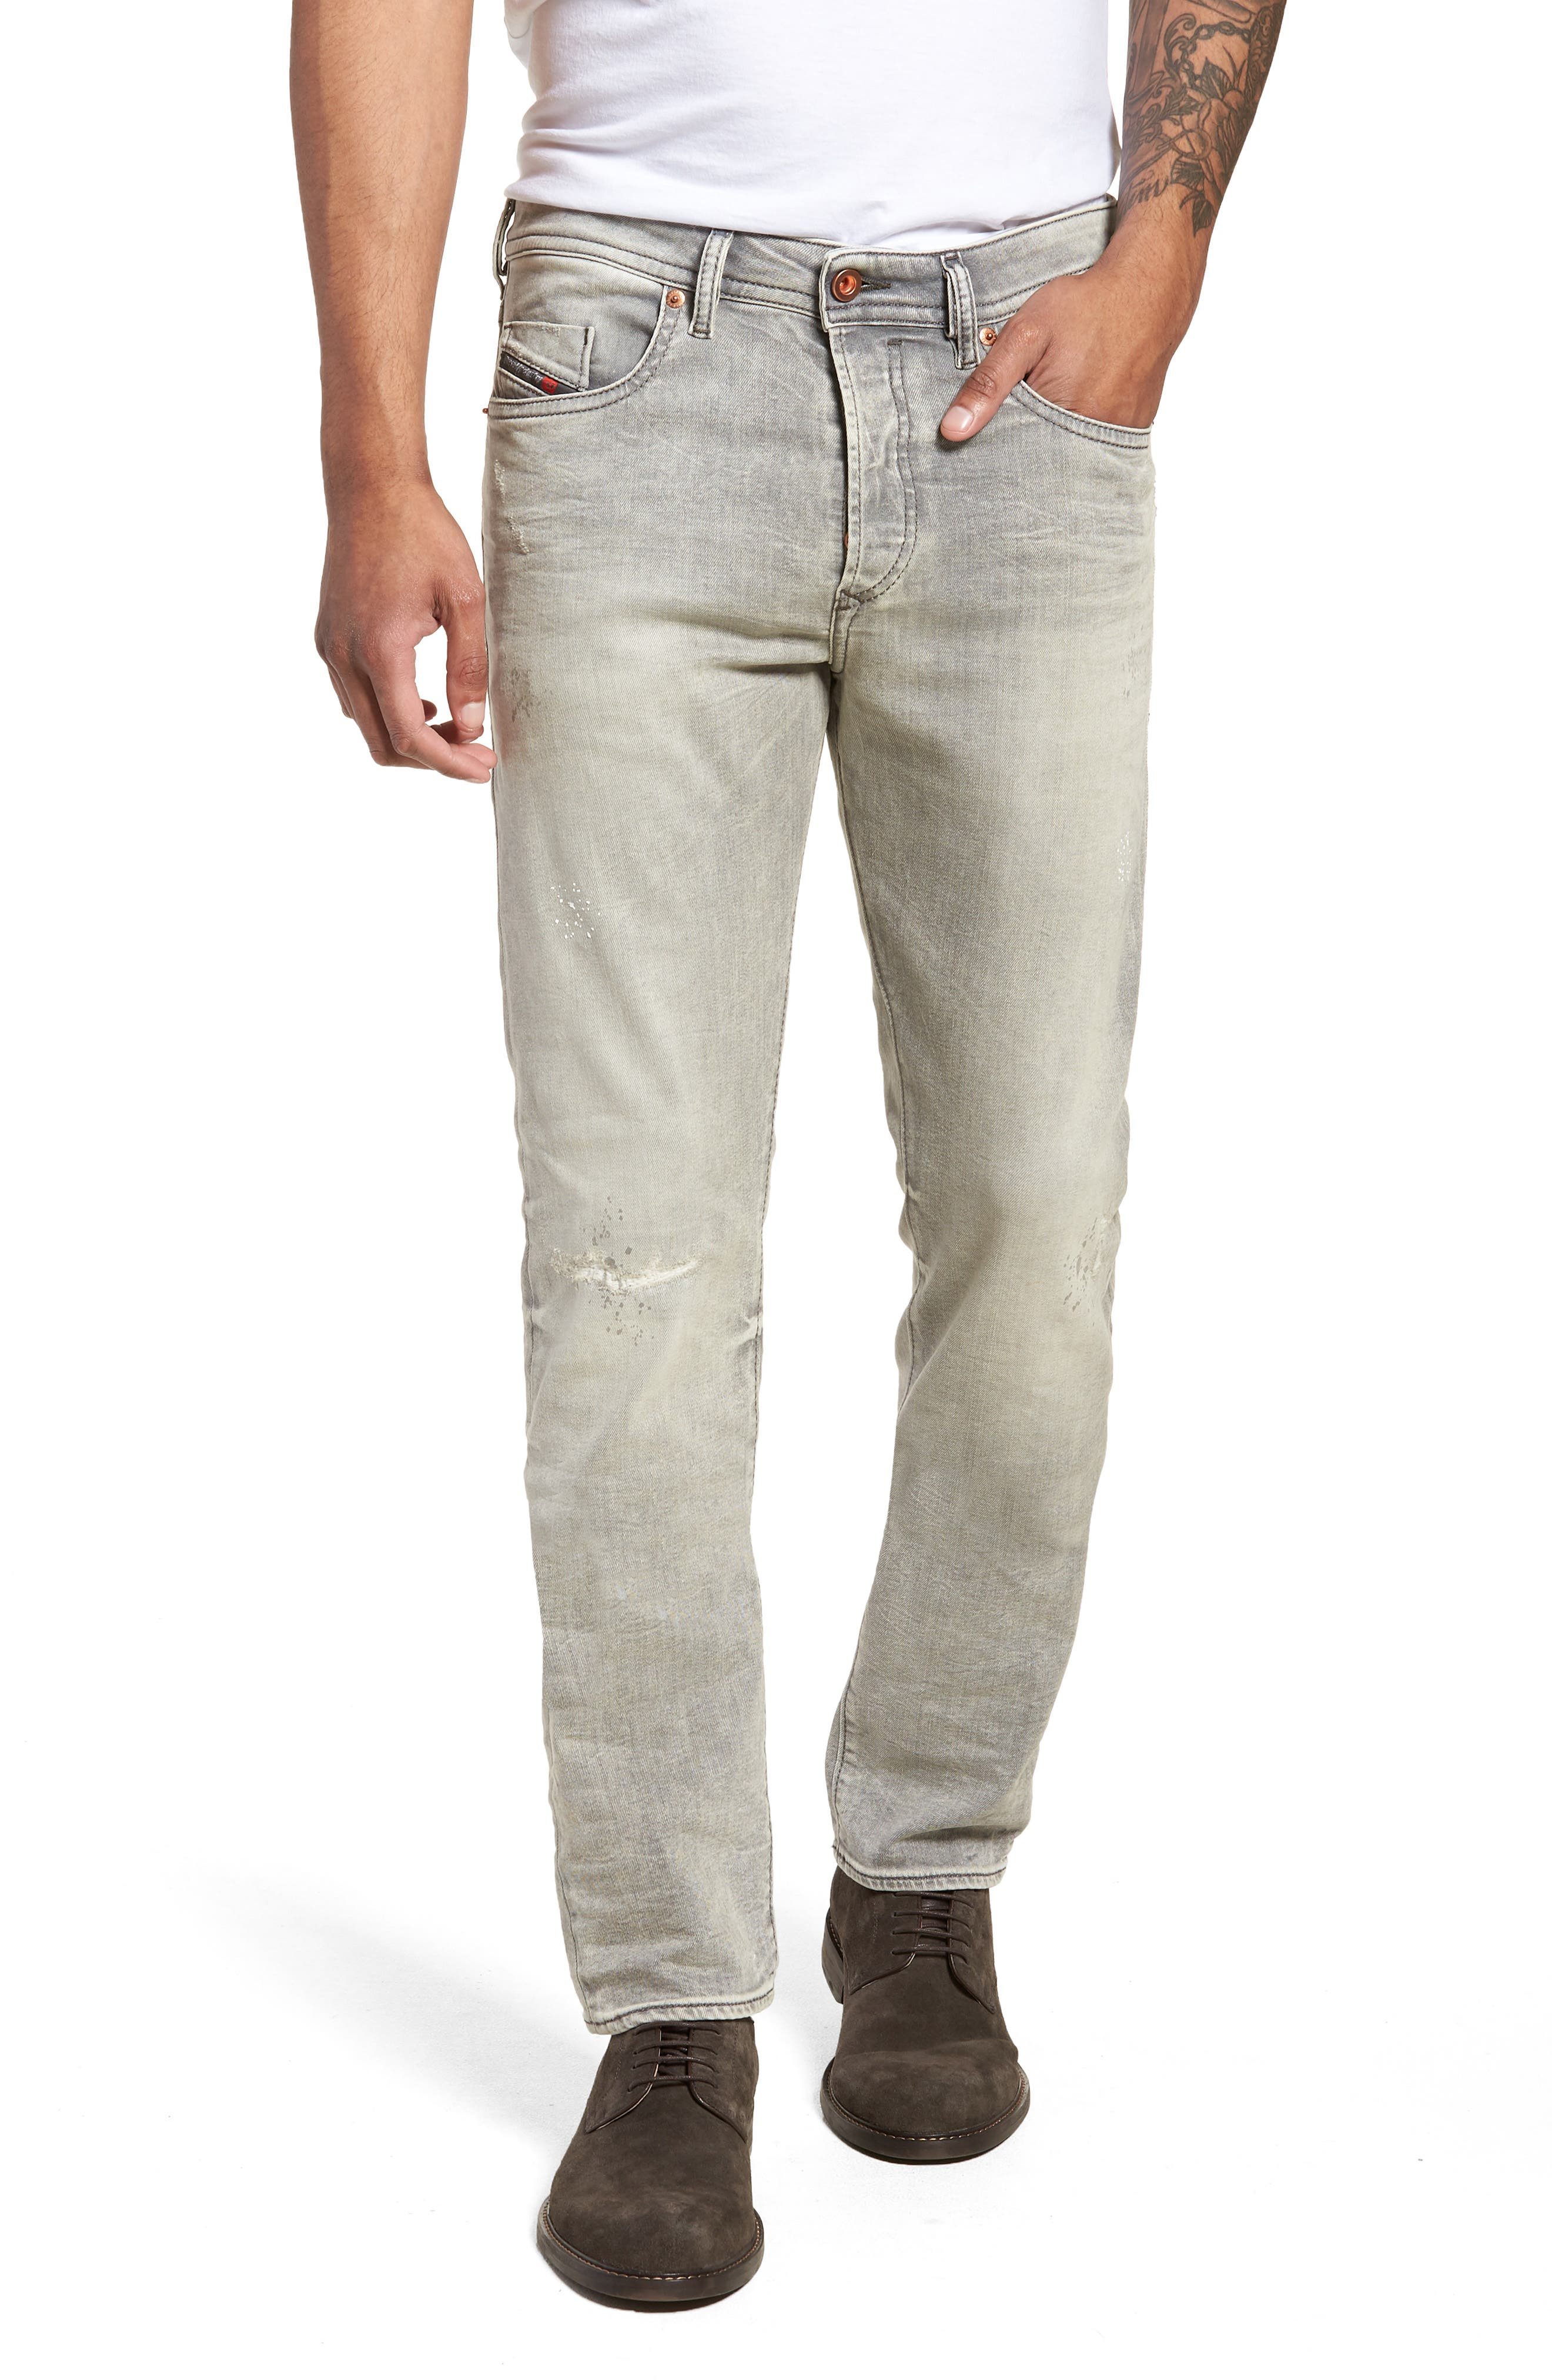 Buster Slim Straight Leg Jeans,                         Main,                         color, 0699J